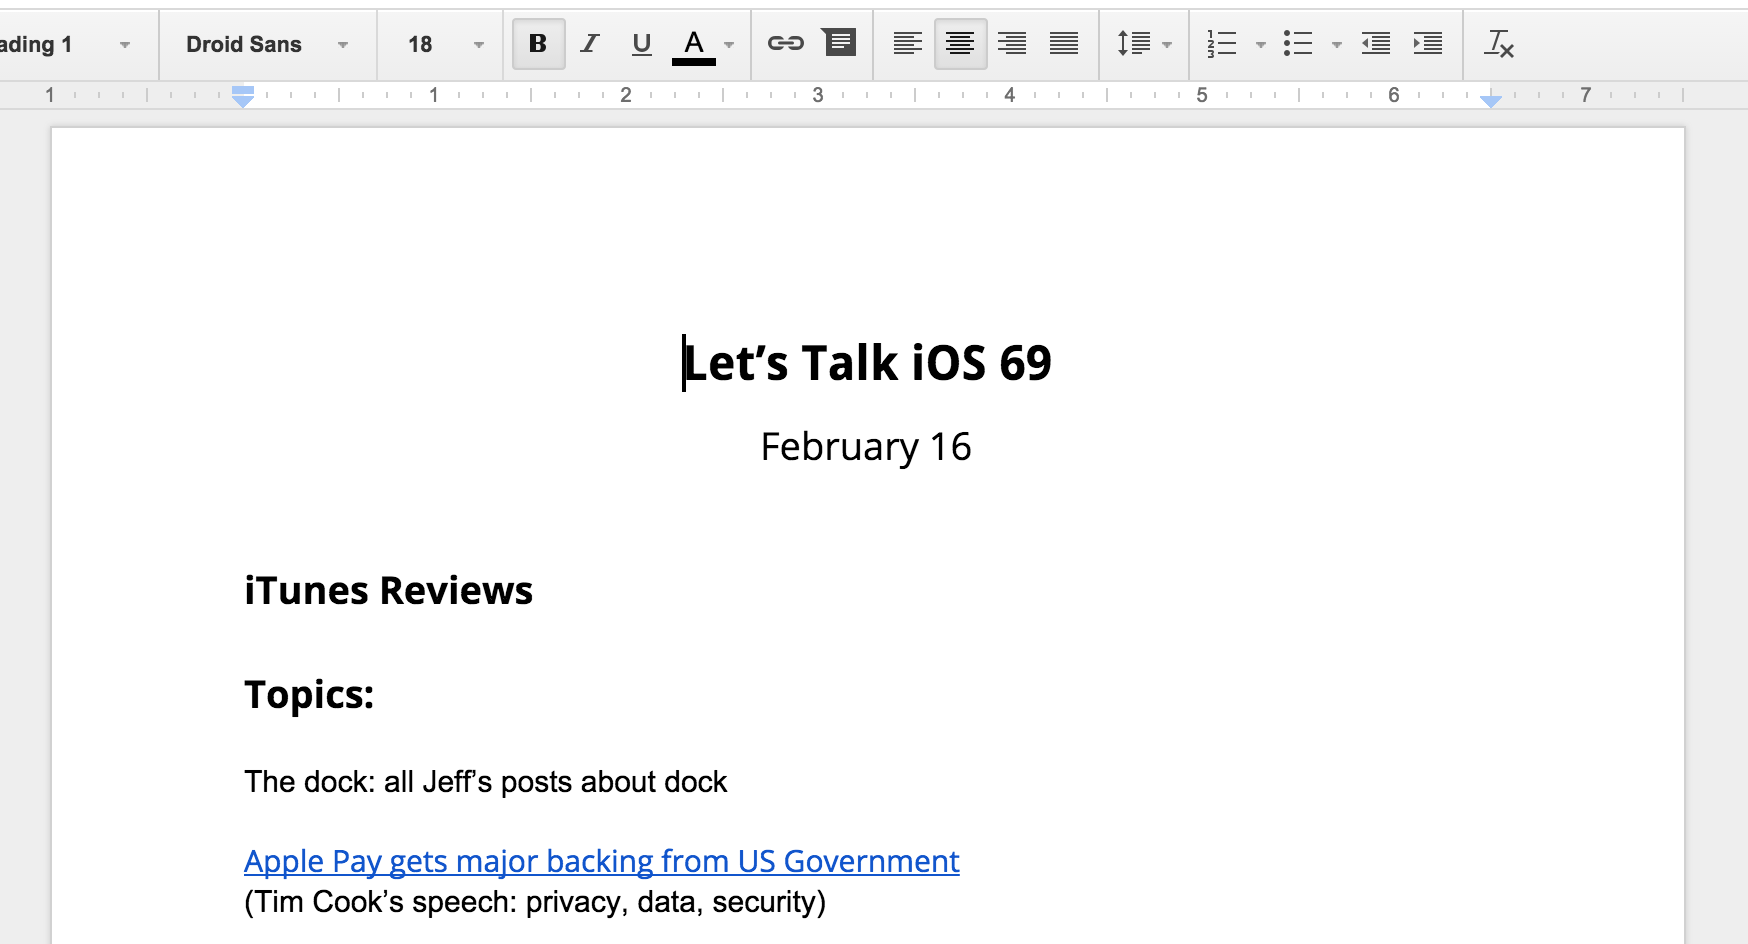 Show notes Google Docs